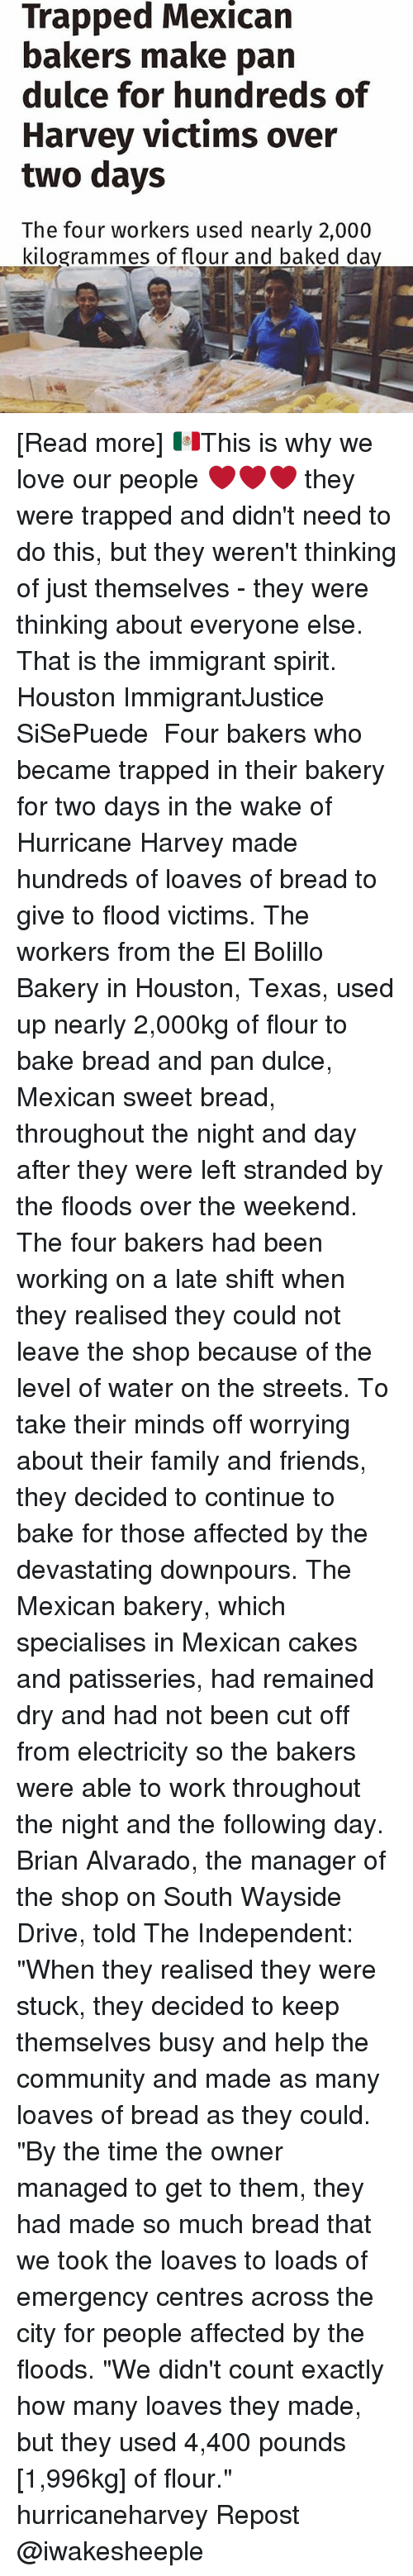 """the weekenders: Trapped Mexican  bakers make pan  dulce for hundreds of  Harvey victims over  two days  The four workers used nearly 2,000  kilogrammes of flour and baked da [Read more] 🇲🇽This is why we love our people ❤❤❤ they were trapped and didn't need to do this, but they weren't thinking of just themselves - they were thinking about everyone else. That is the immigrant spirit. Houston ImmigrantJustice SiSePuede ・・・ Four bakers who became trapped in their bakery for two days in the wake of Hurricane Harvey made hundreds of loaves of bread to give to flood victims. The workers from the El Bolillo Bakery in Houston, Texas, used up nearly 2,000kg of flour to bake bread and pan dulce, Mexican sweet bread, throughout the night and day after they were left stranded by the floods over the weekend. The four bakers had been working on a late shift when they realised they could not leave the shop because of the level of water on the streets. To take their minds off worrying about their family and friends, they decided to continue to bake for those affected by the devastating downpours. The Mexican bakery, which specialises in Mexican cakes and patisseries, had remained dry and had not been cut off from electricity so the bakers were able to work throughout the night and the following day. Brian Alvarado, the manager of the shop on South Wayside Drive, told The Independent: """"When they realised they were stuck, they decided to keep themselves busy and help the community and made as many loaves of bread as they could. """"By the time the owner managed to get to them, they had made so much bread that we took the loaves to loads of emergency centres across the city for people affected by the floods. """"We didn't count exactly how many loaves they made, but they used 4,400 pounds [1,996kg] of flour."""" hurricaneharvey Repost @iwakesheeple"""